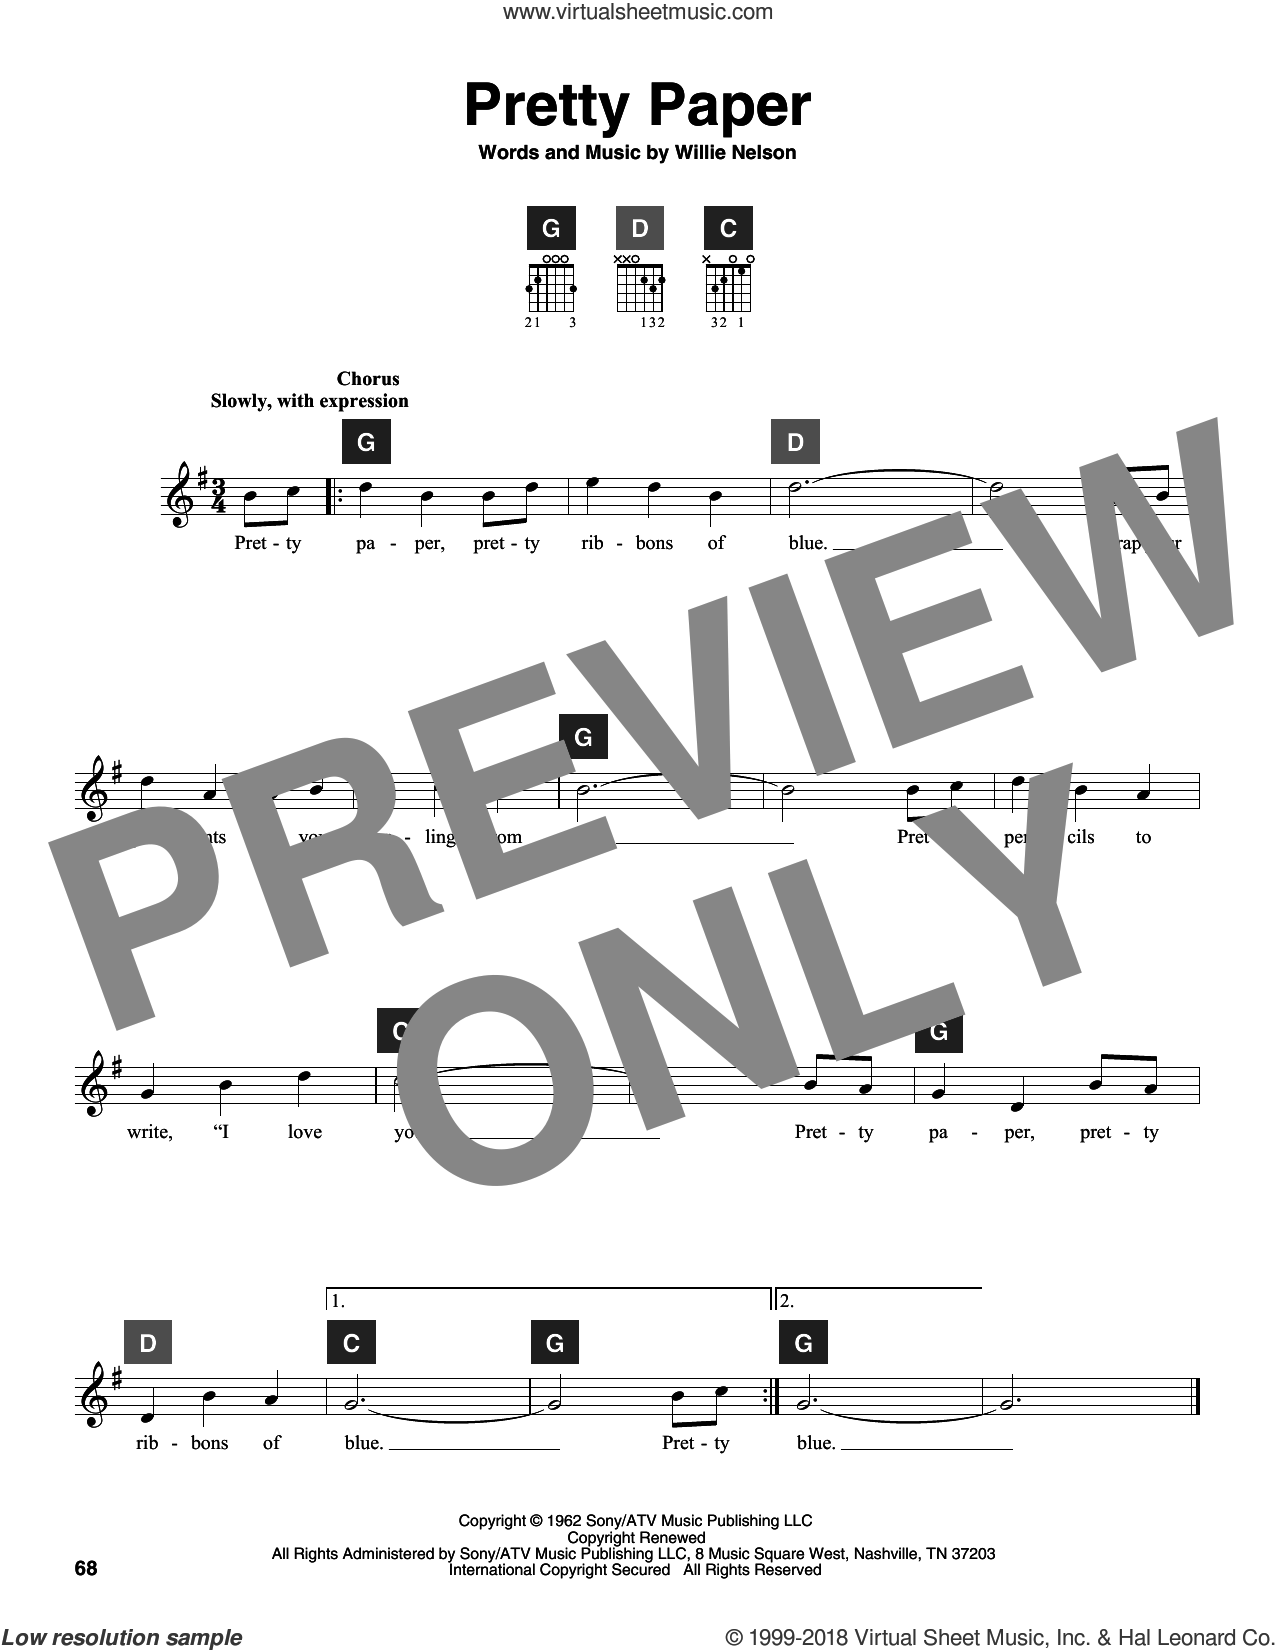 Pretty Paper sheet music for guitar solo (ChordBuddy system) by Willie Nelson